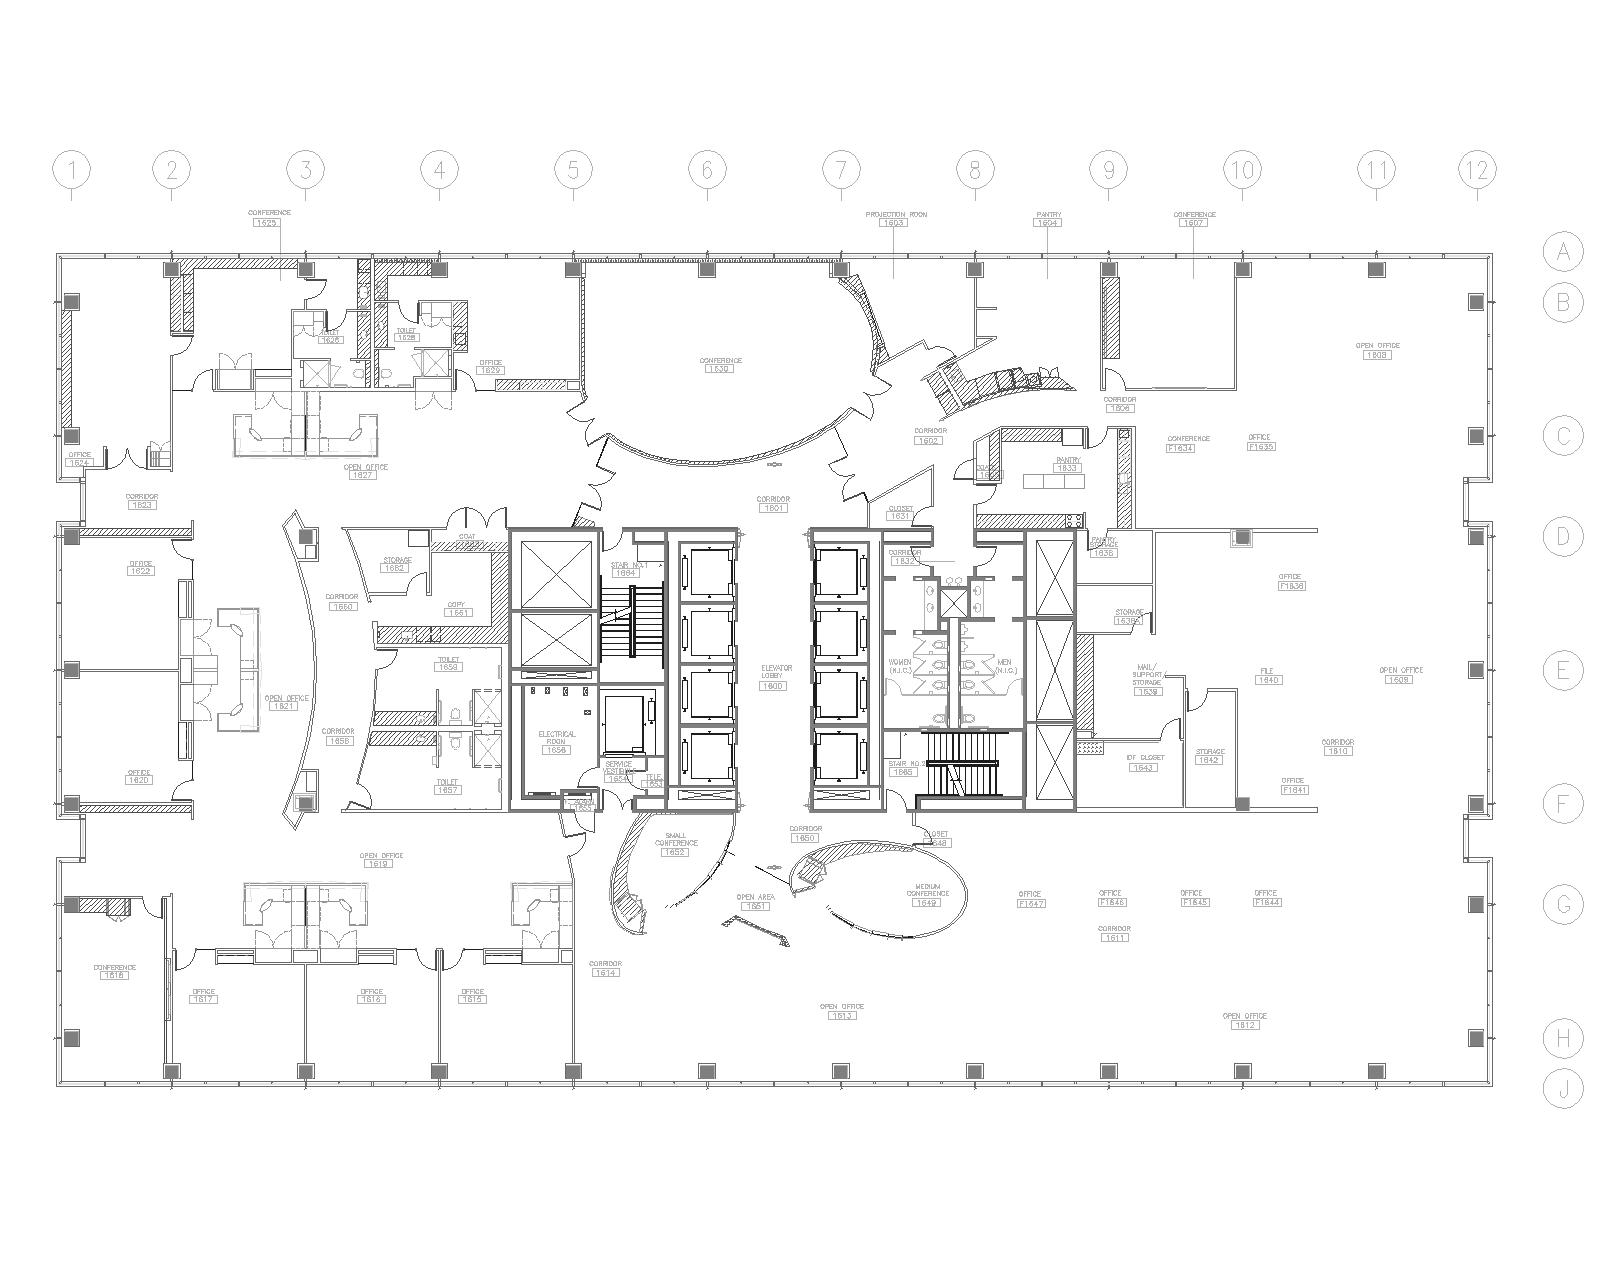 Pepsi Co 01.04 - 16th Floor Plan.jpg